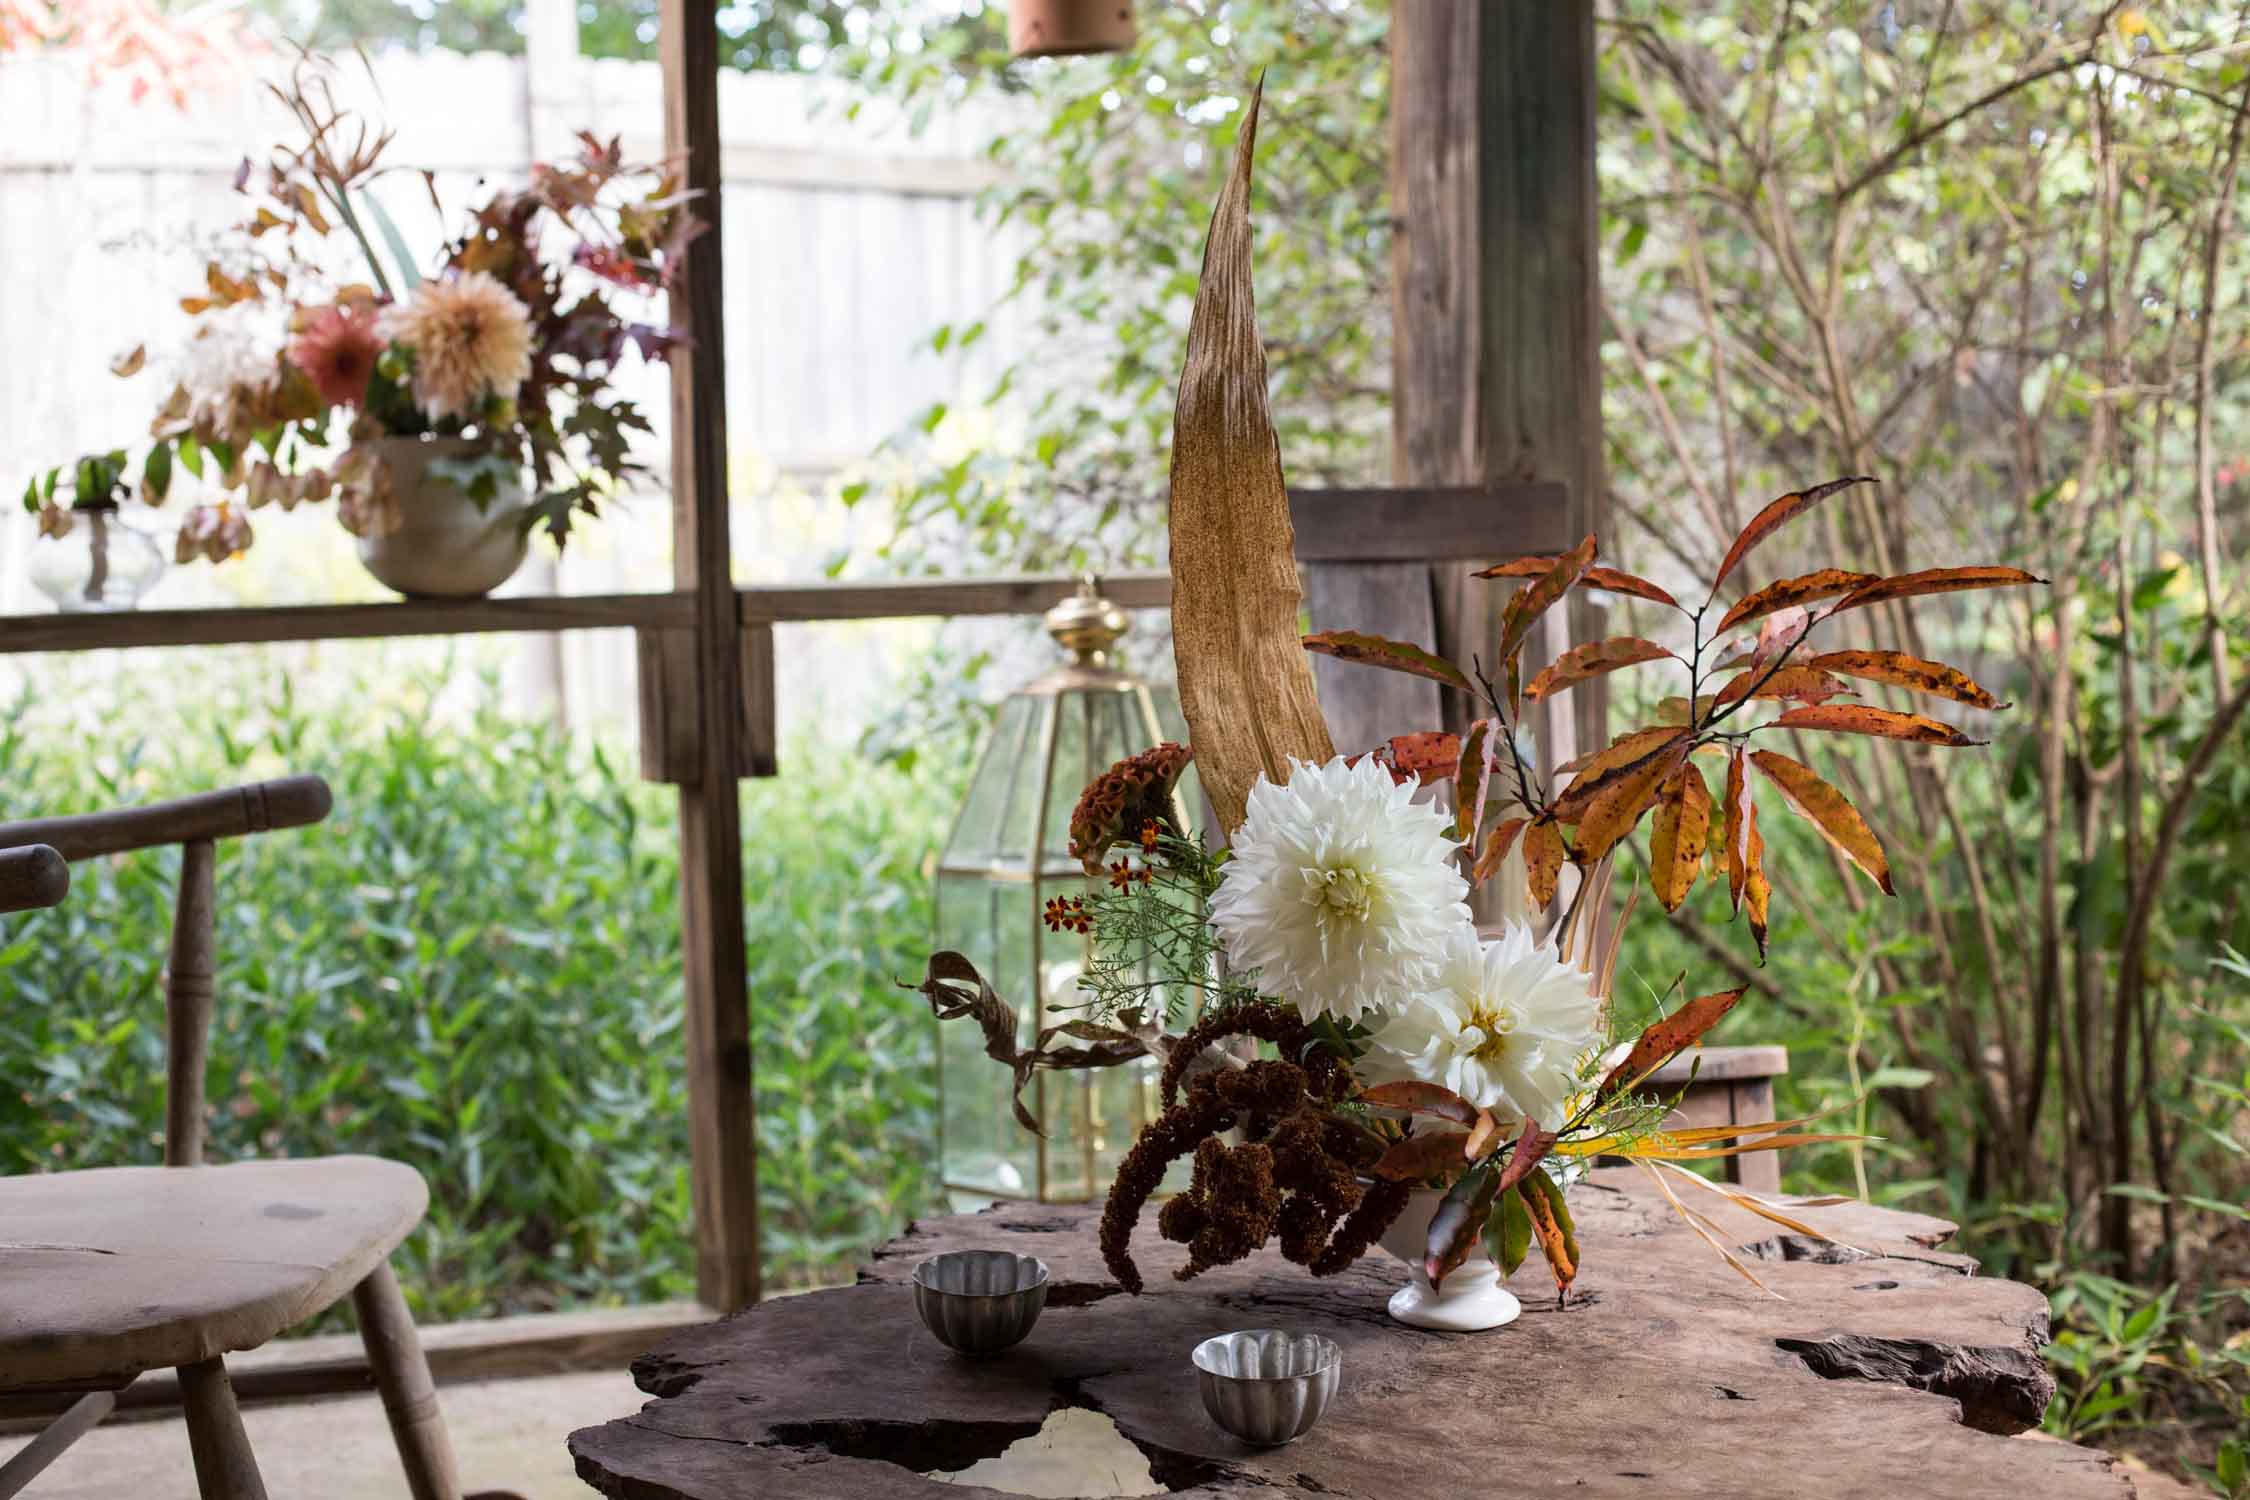 RA_3 porch farm flower social-201610175071.jpg